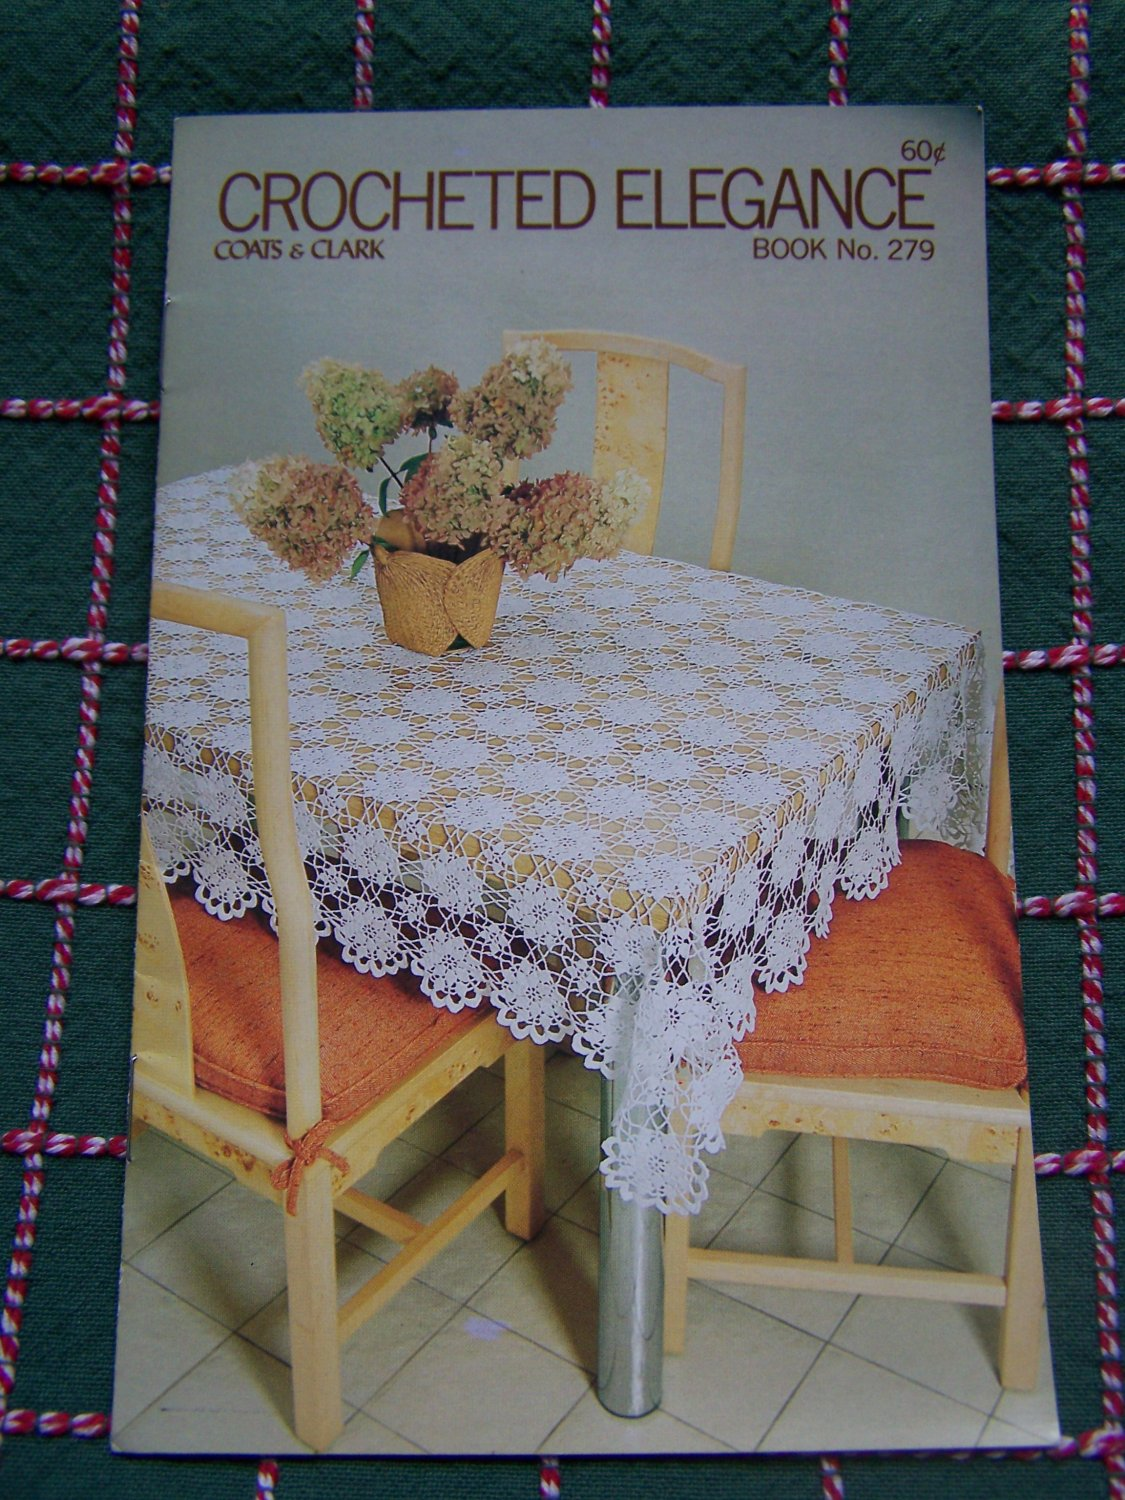 New Vintage Coats Amp Clark Crocheted Tablecloths Bedspreads